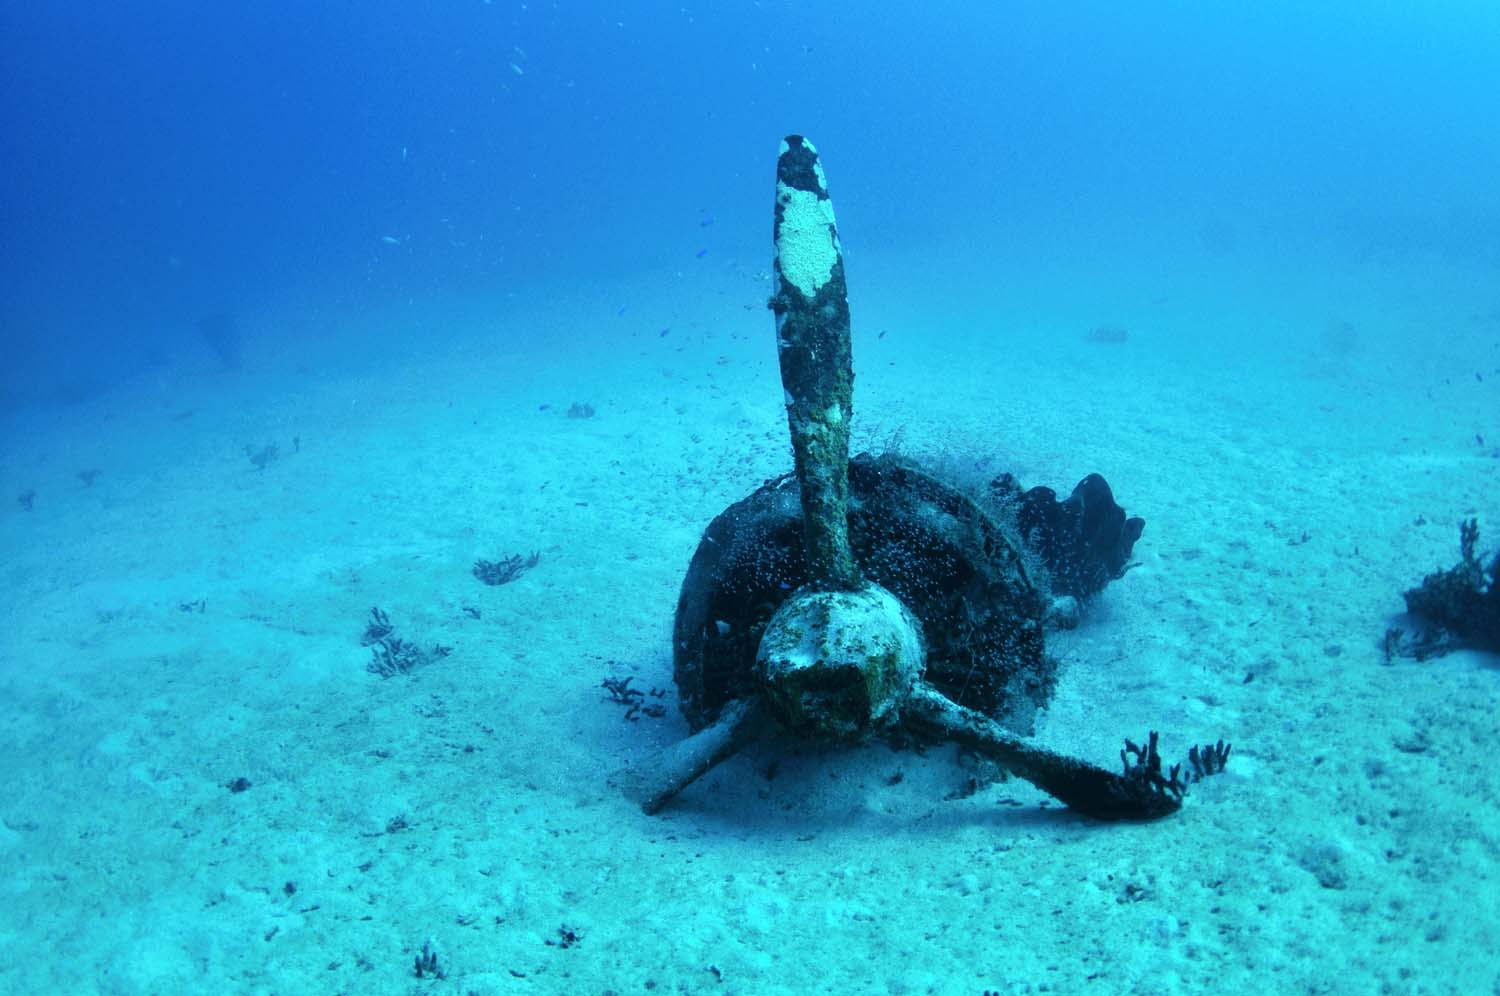 An engine on the seafloor reminds us of the once majestic